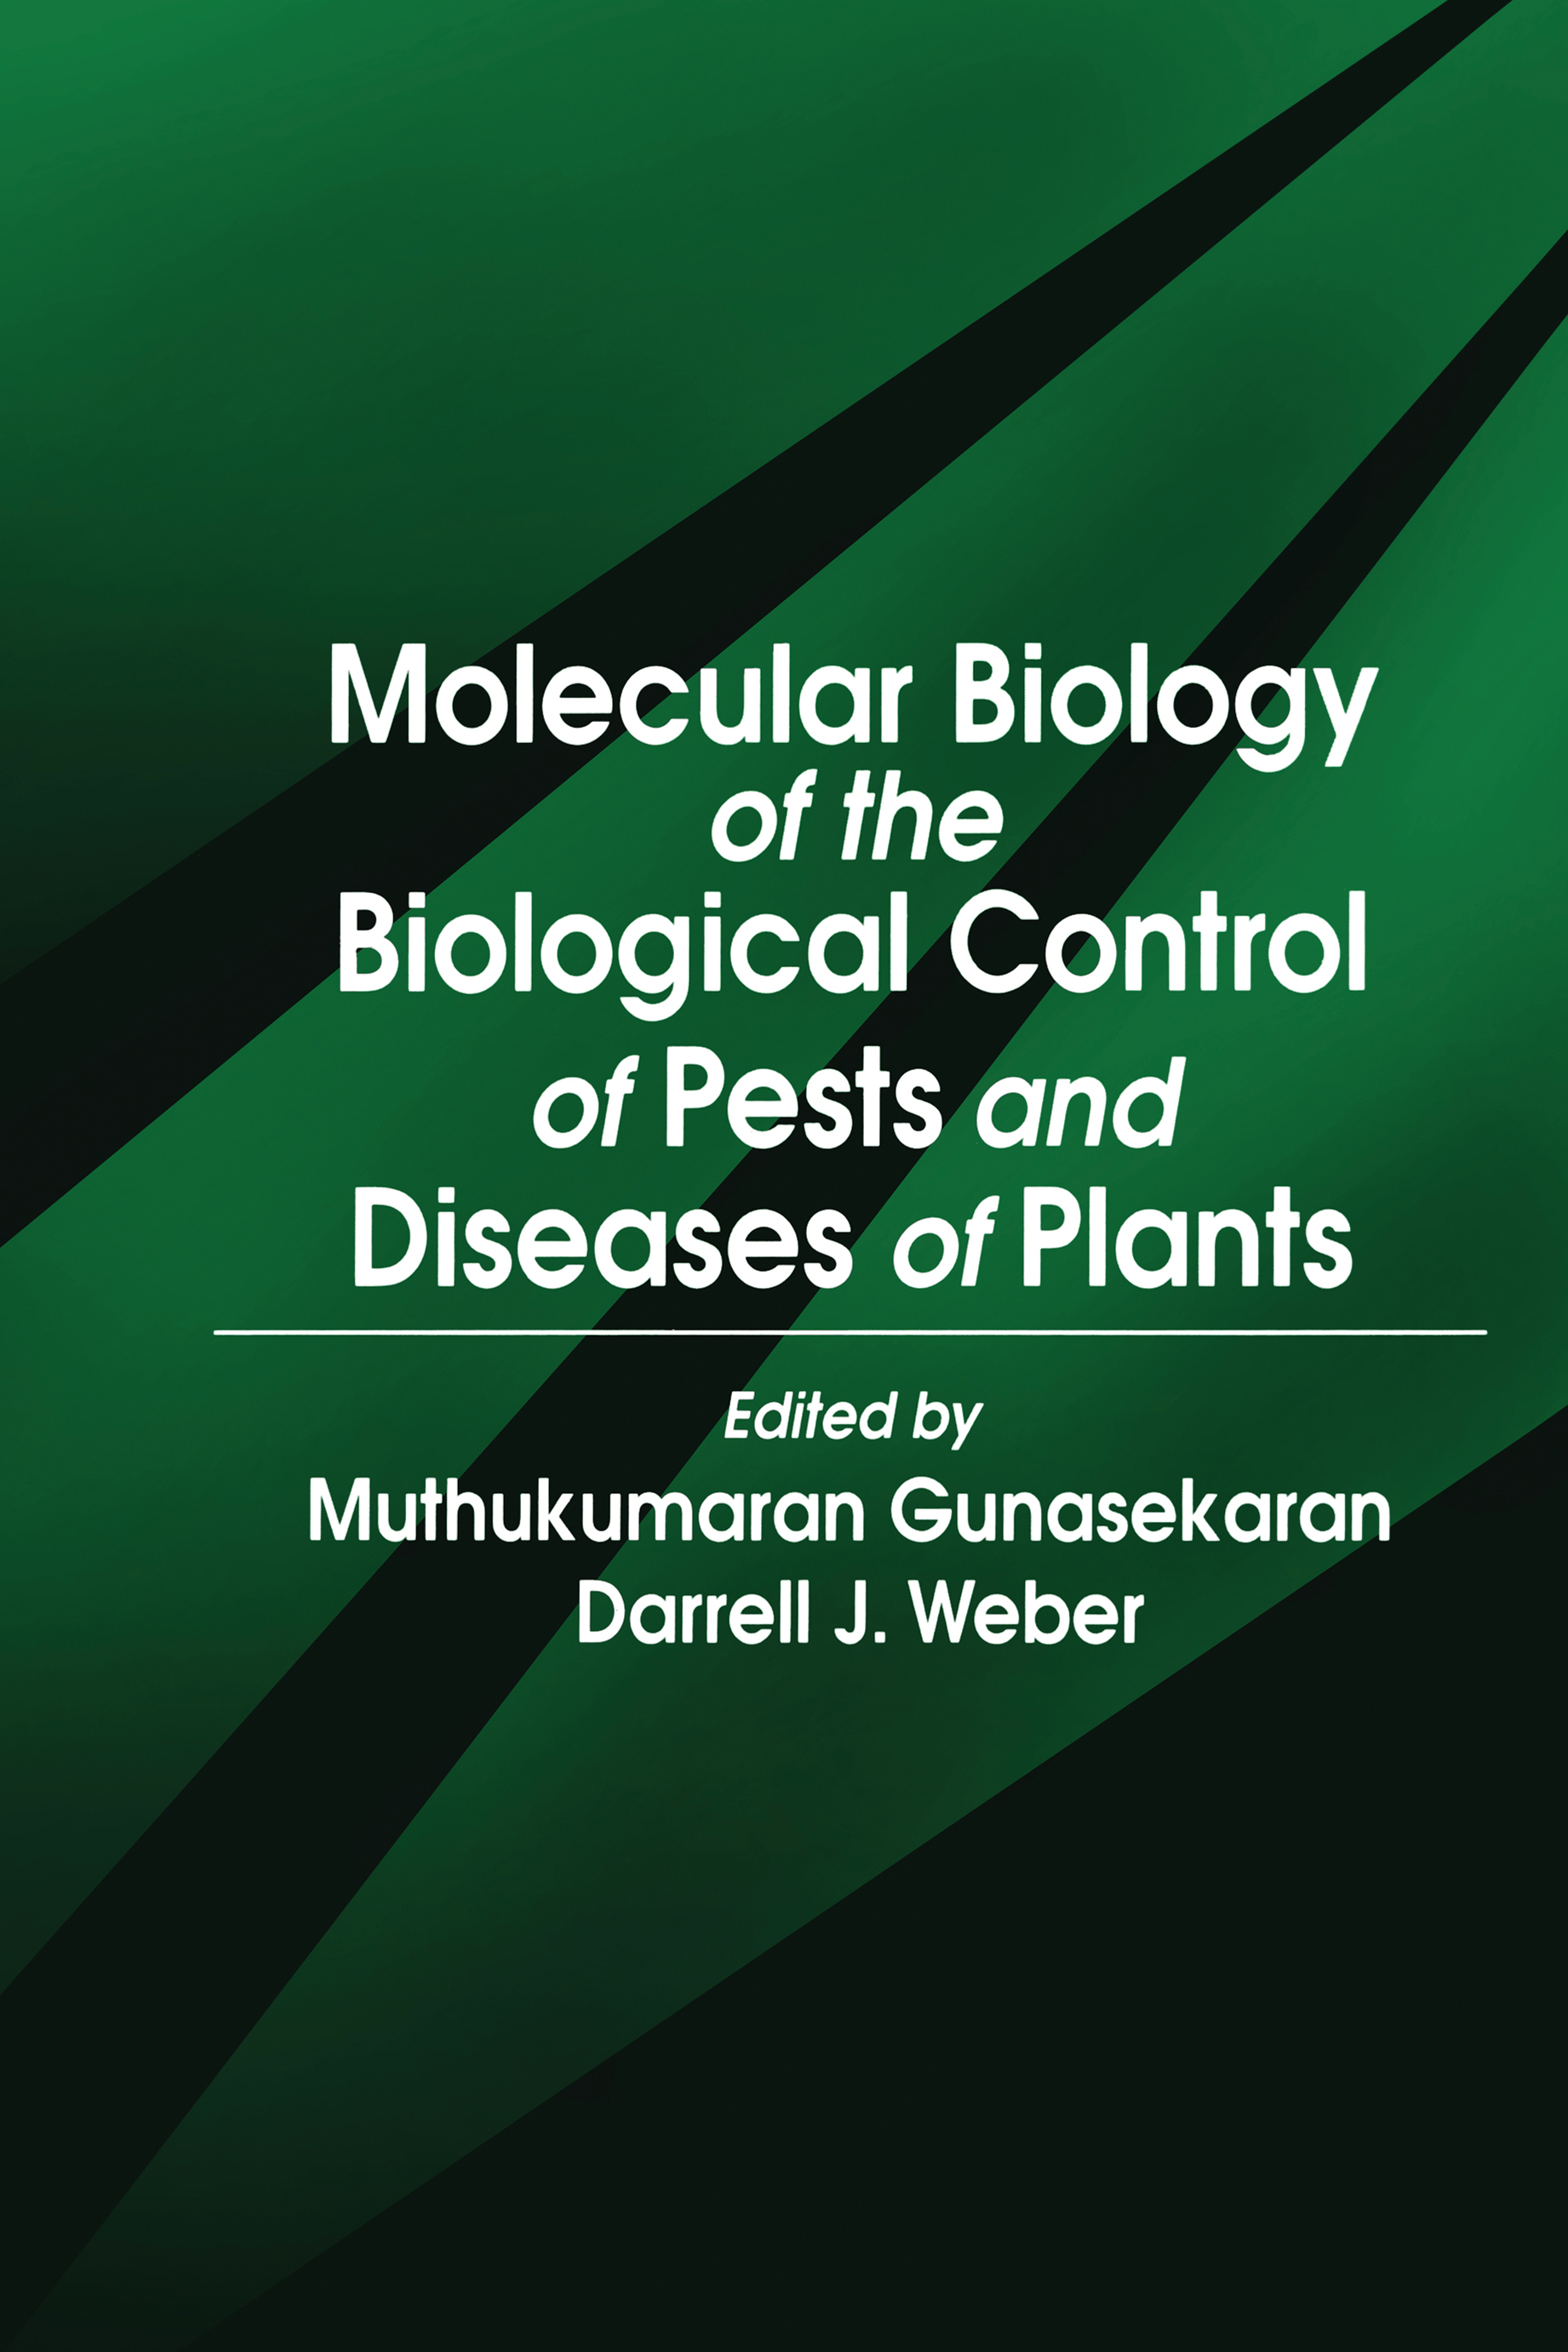 Molecular Biology of the Biological Control of Pests and Diseases of Plants